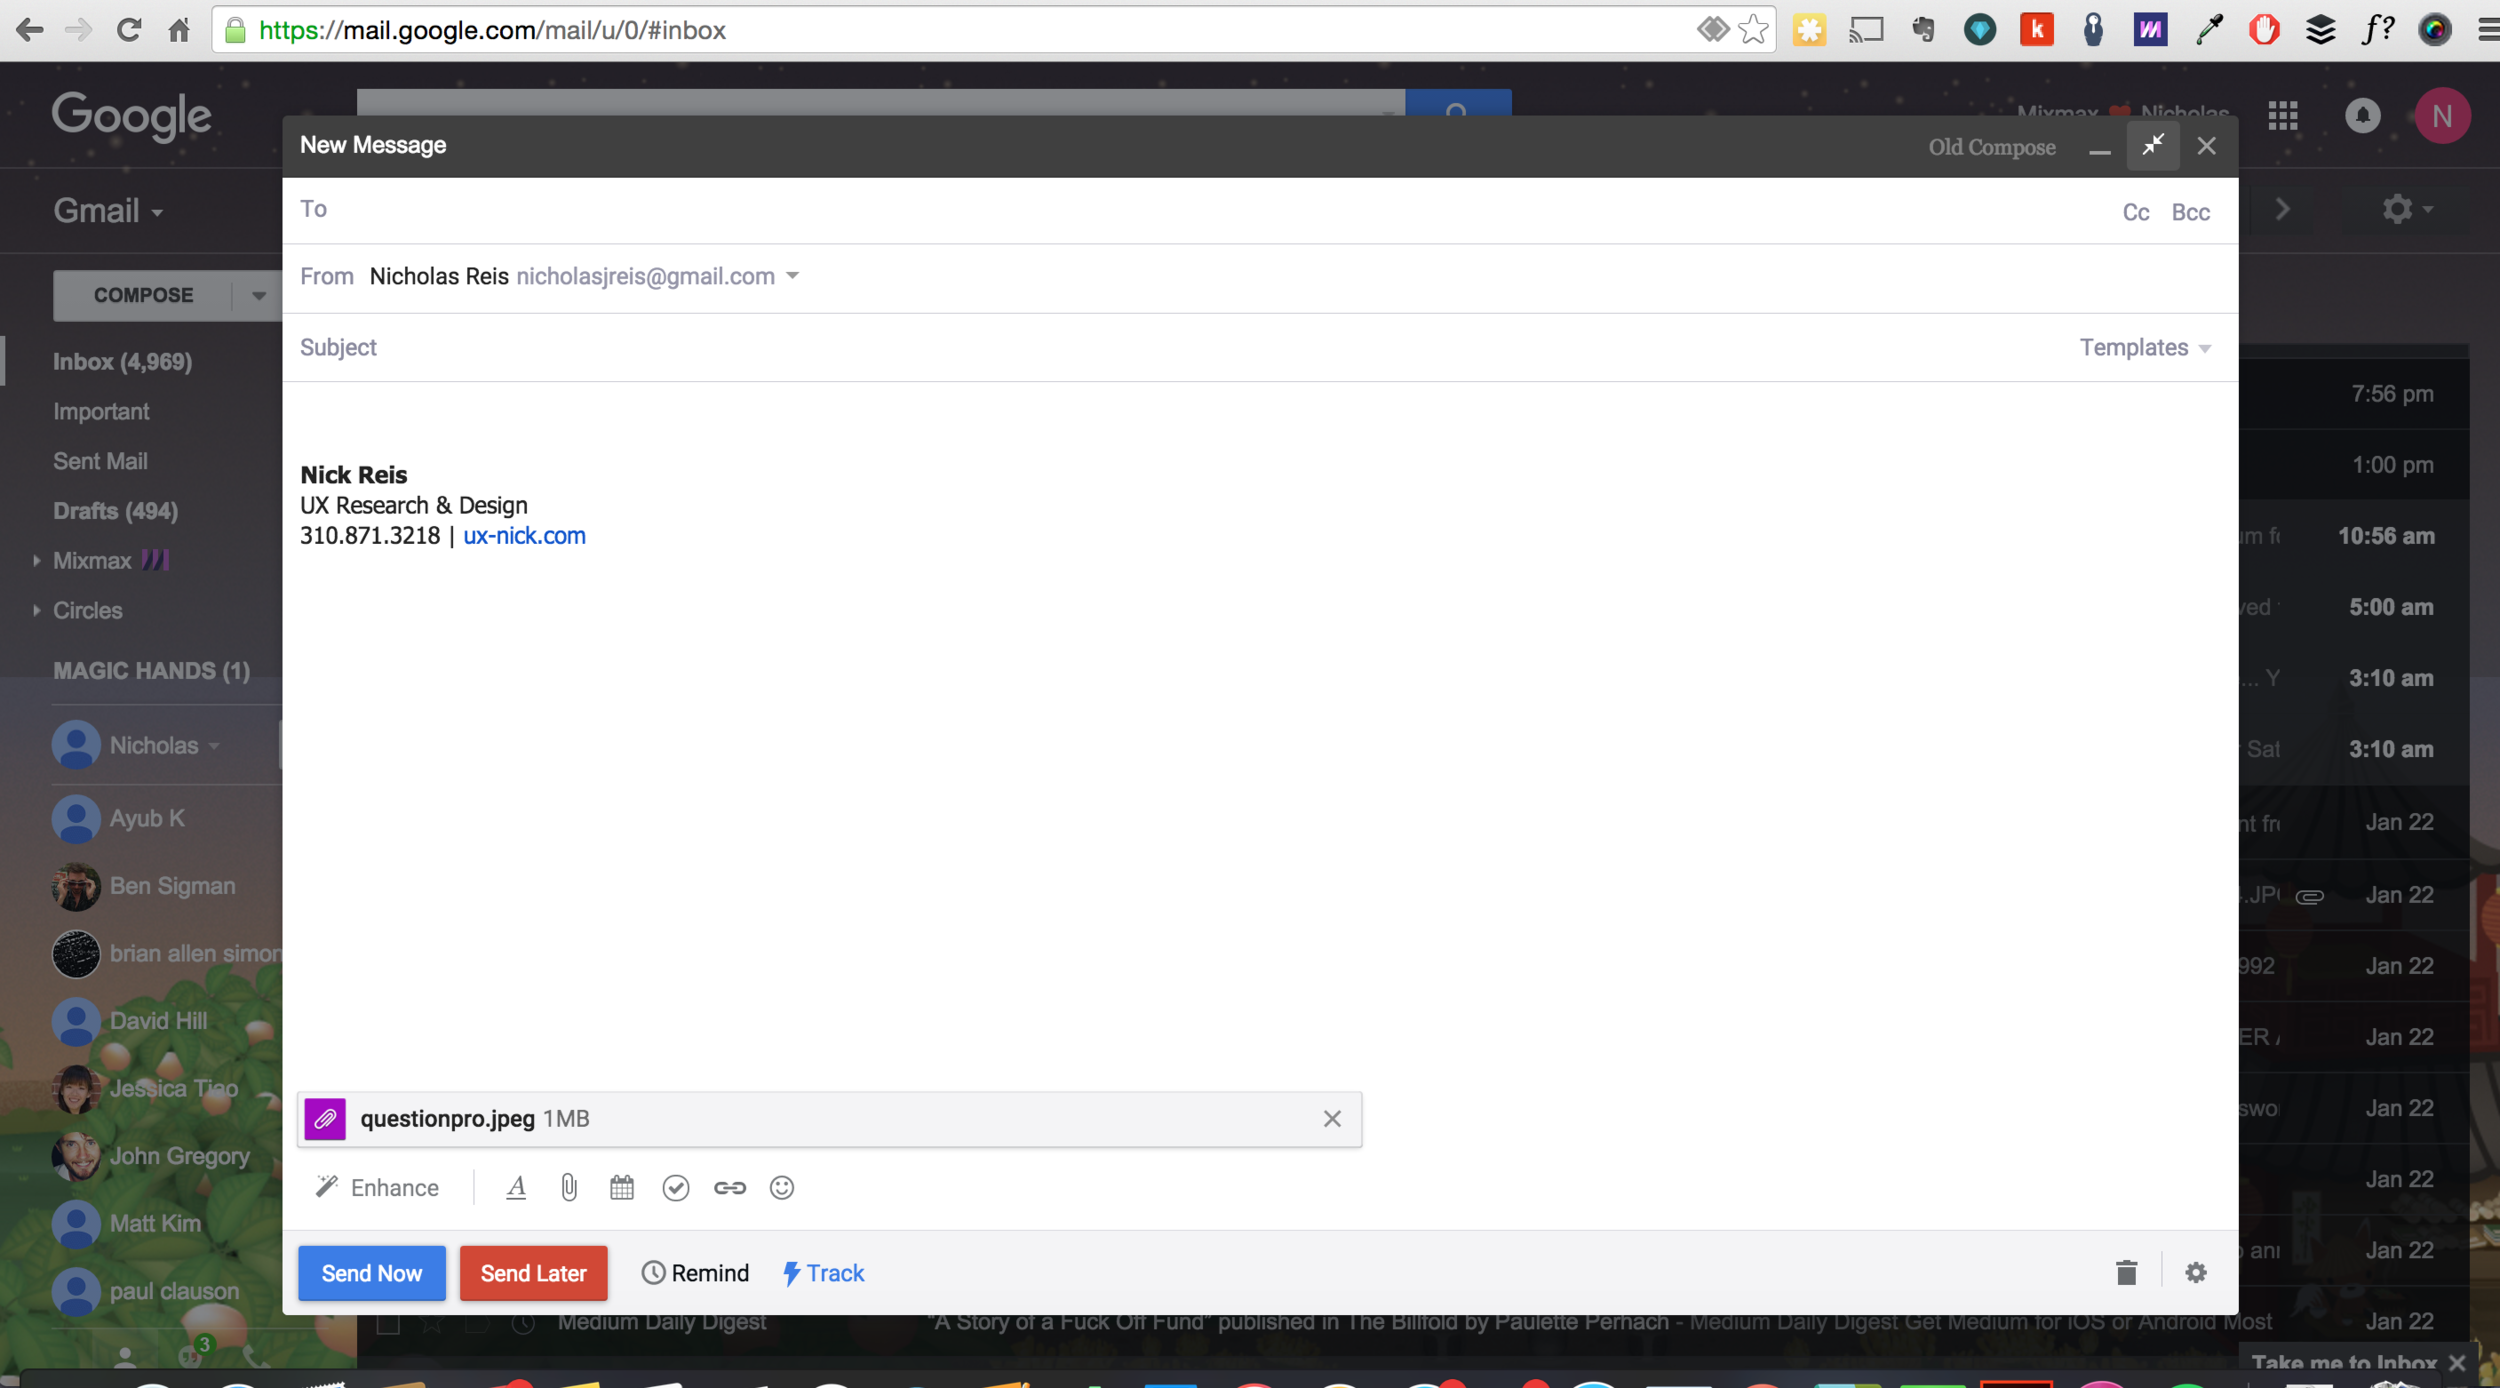 1.4 ❧ Gmail screen displays attached image